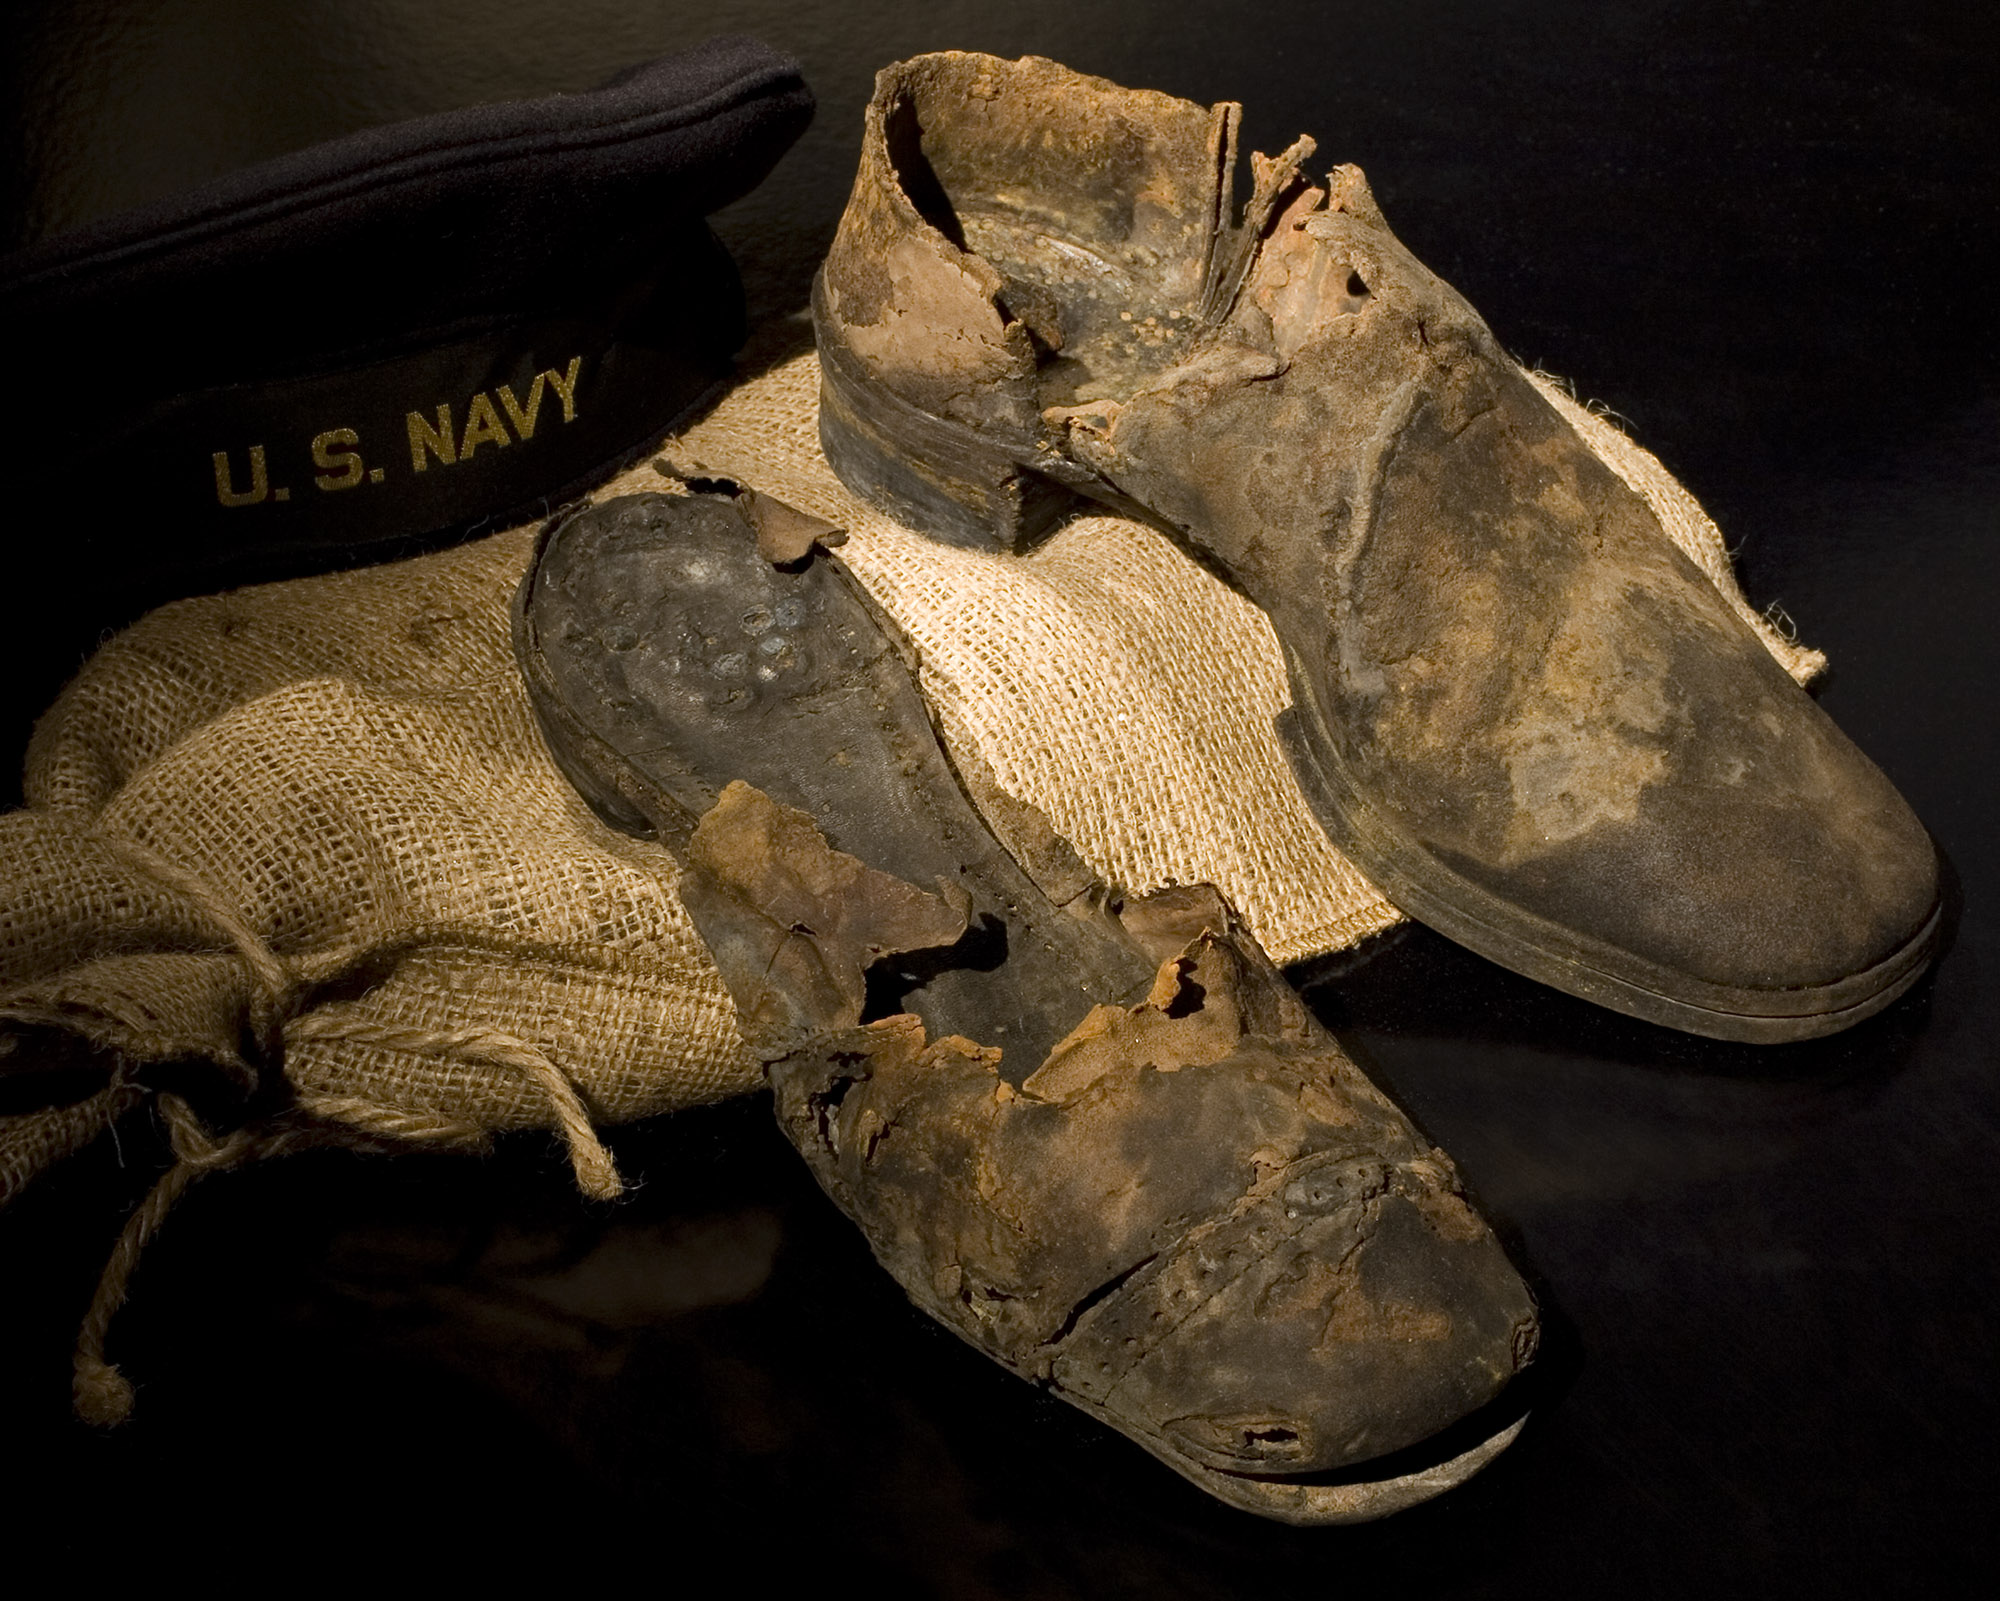 Two leather shoes found in the <em>Monitor</em>'s turret, recovered in 2002